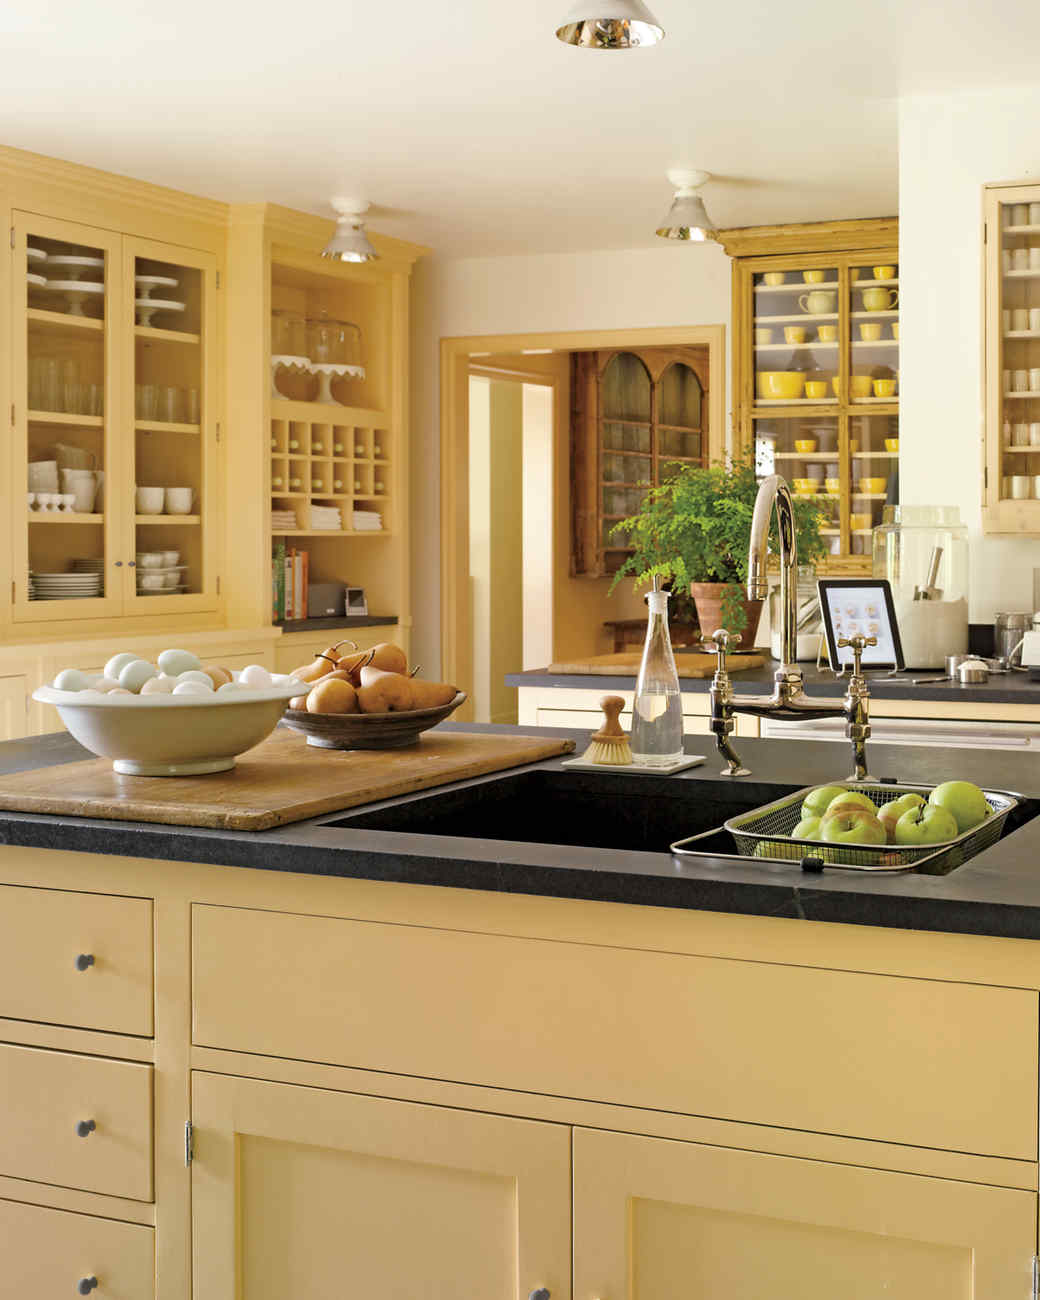 Martha stewart kitchen design - Martha stewart kitchen design ...